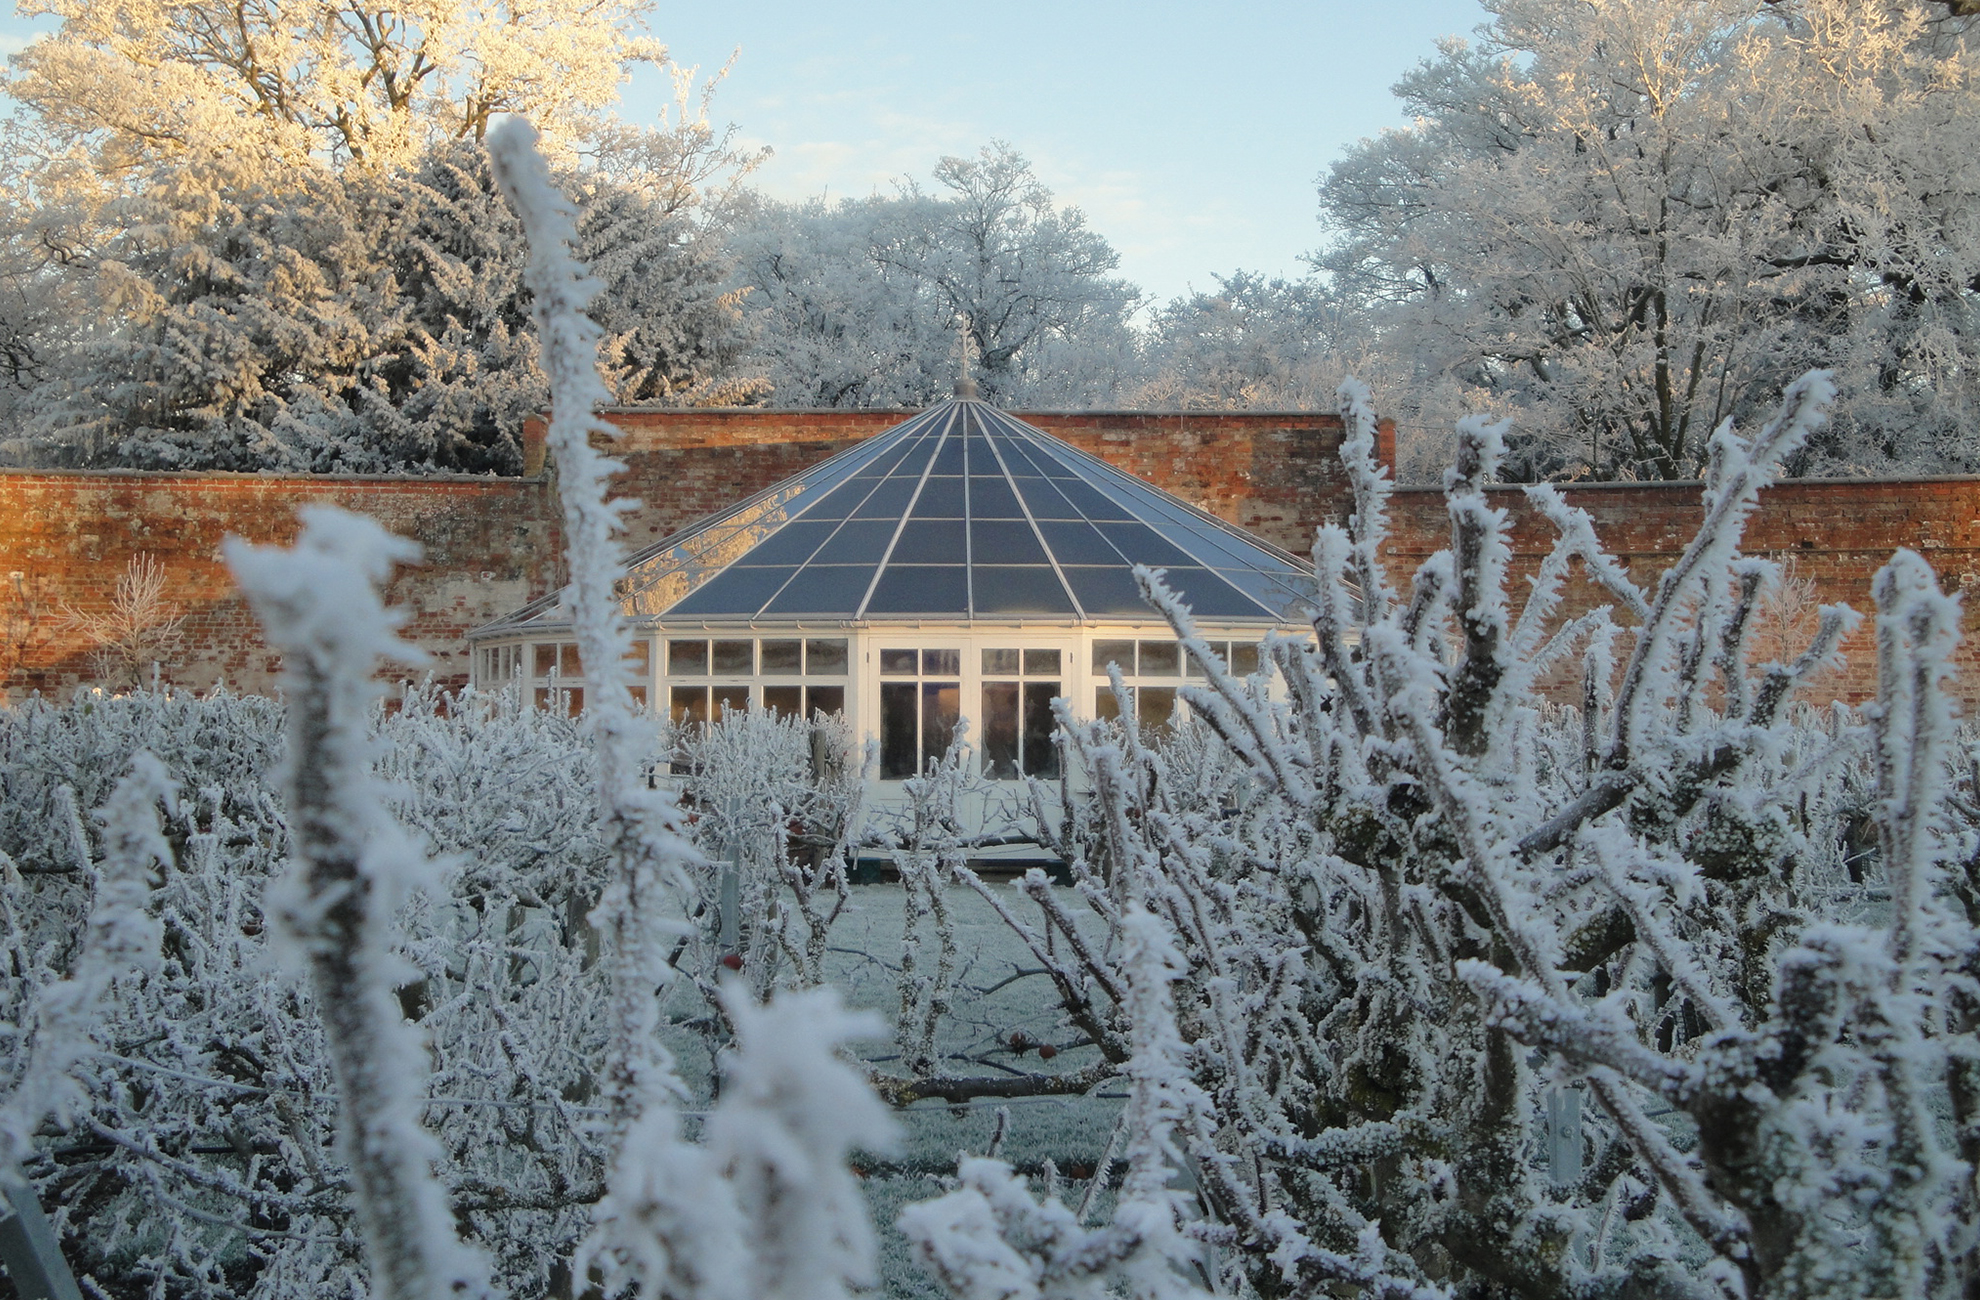 The Georgian Glasshouse at Combermere Abbey looks stunning in the winter sunshine